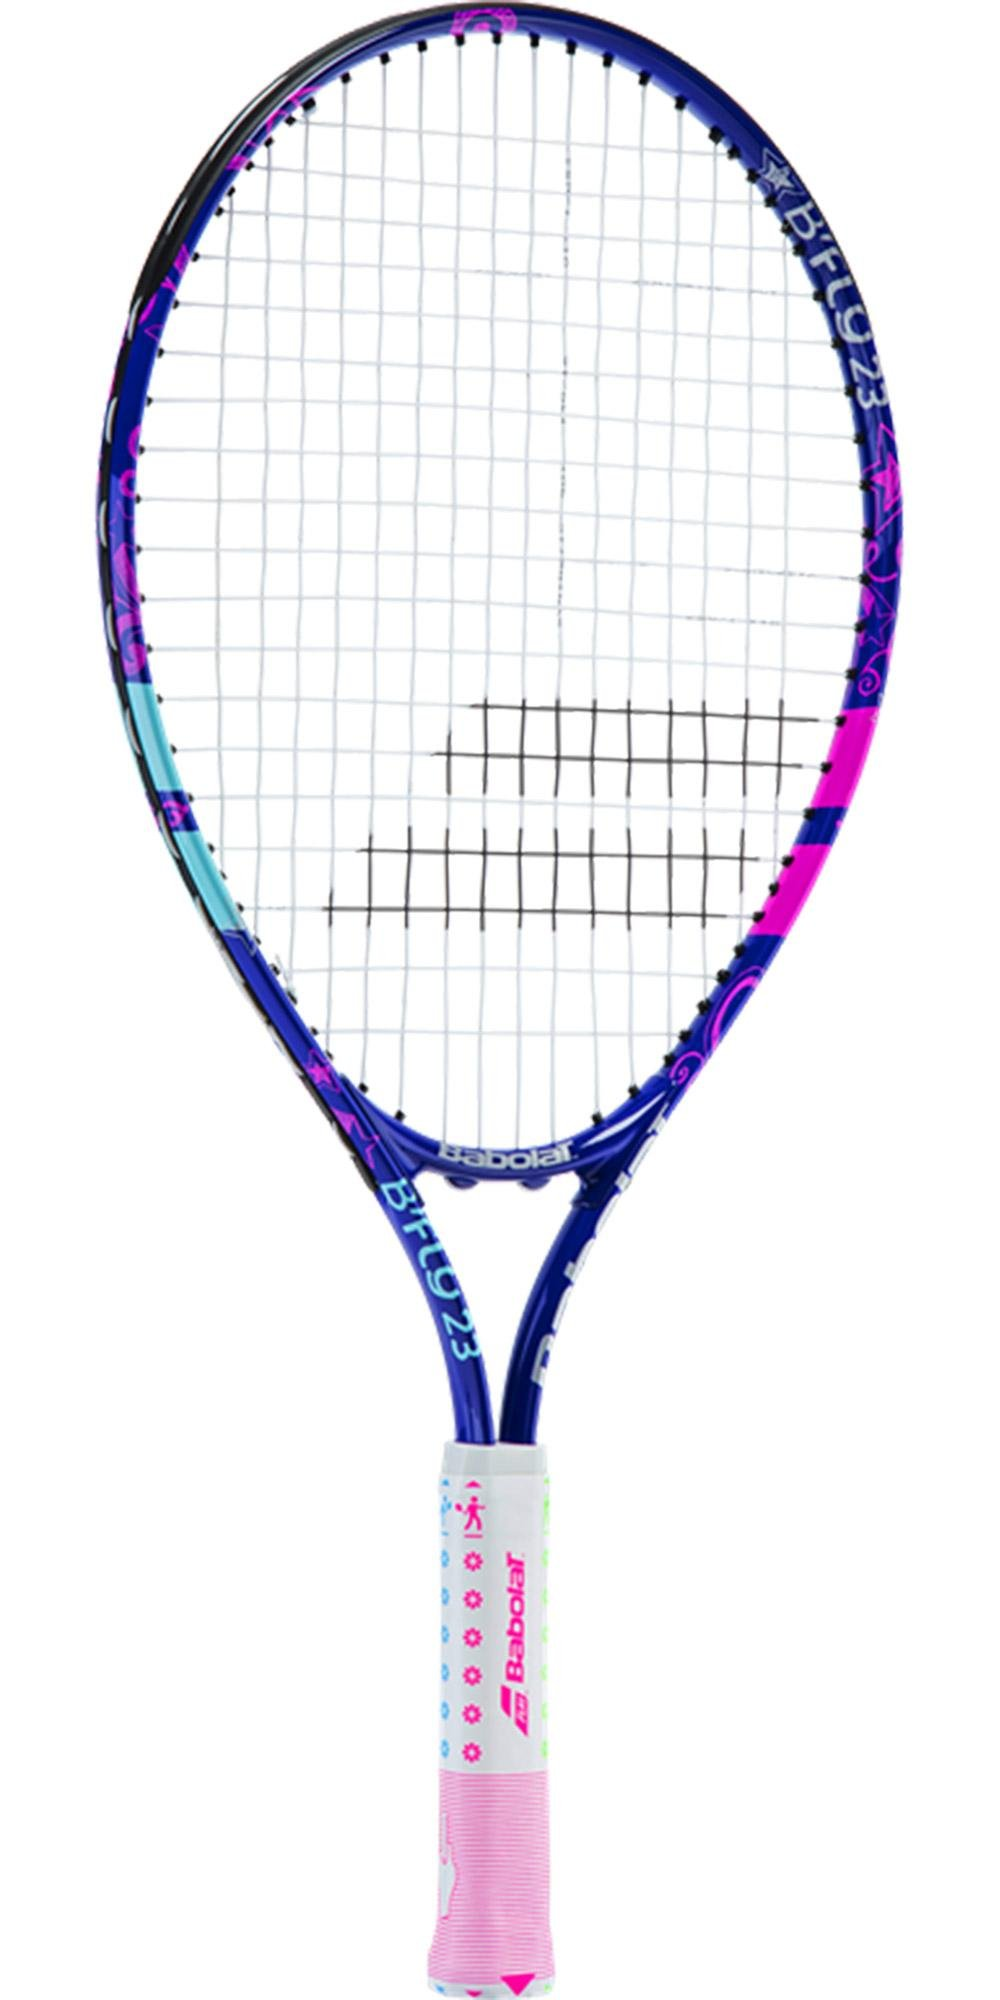 Babolat B'Fly 21'' Inch Child's Tennis Racquet/Racket Kit or Set Bundled with a Purple Junior Tennis Backpack (Best Back to School Gift for Boys and Girls) by Babolat (Image #3)